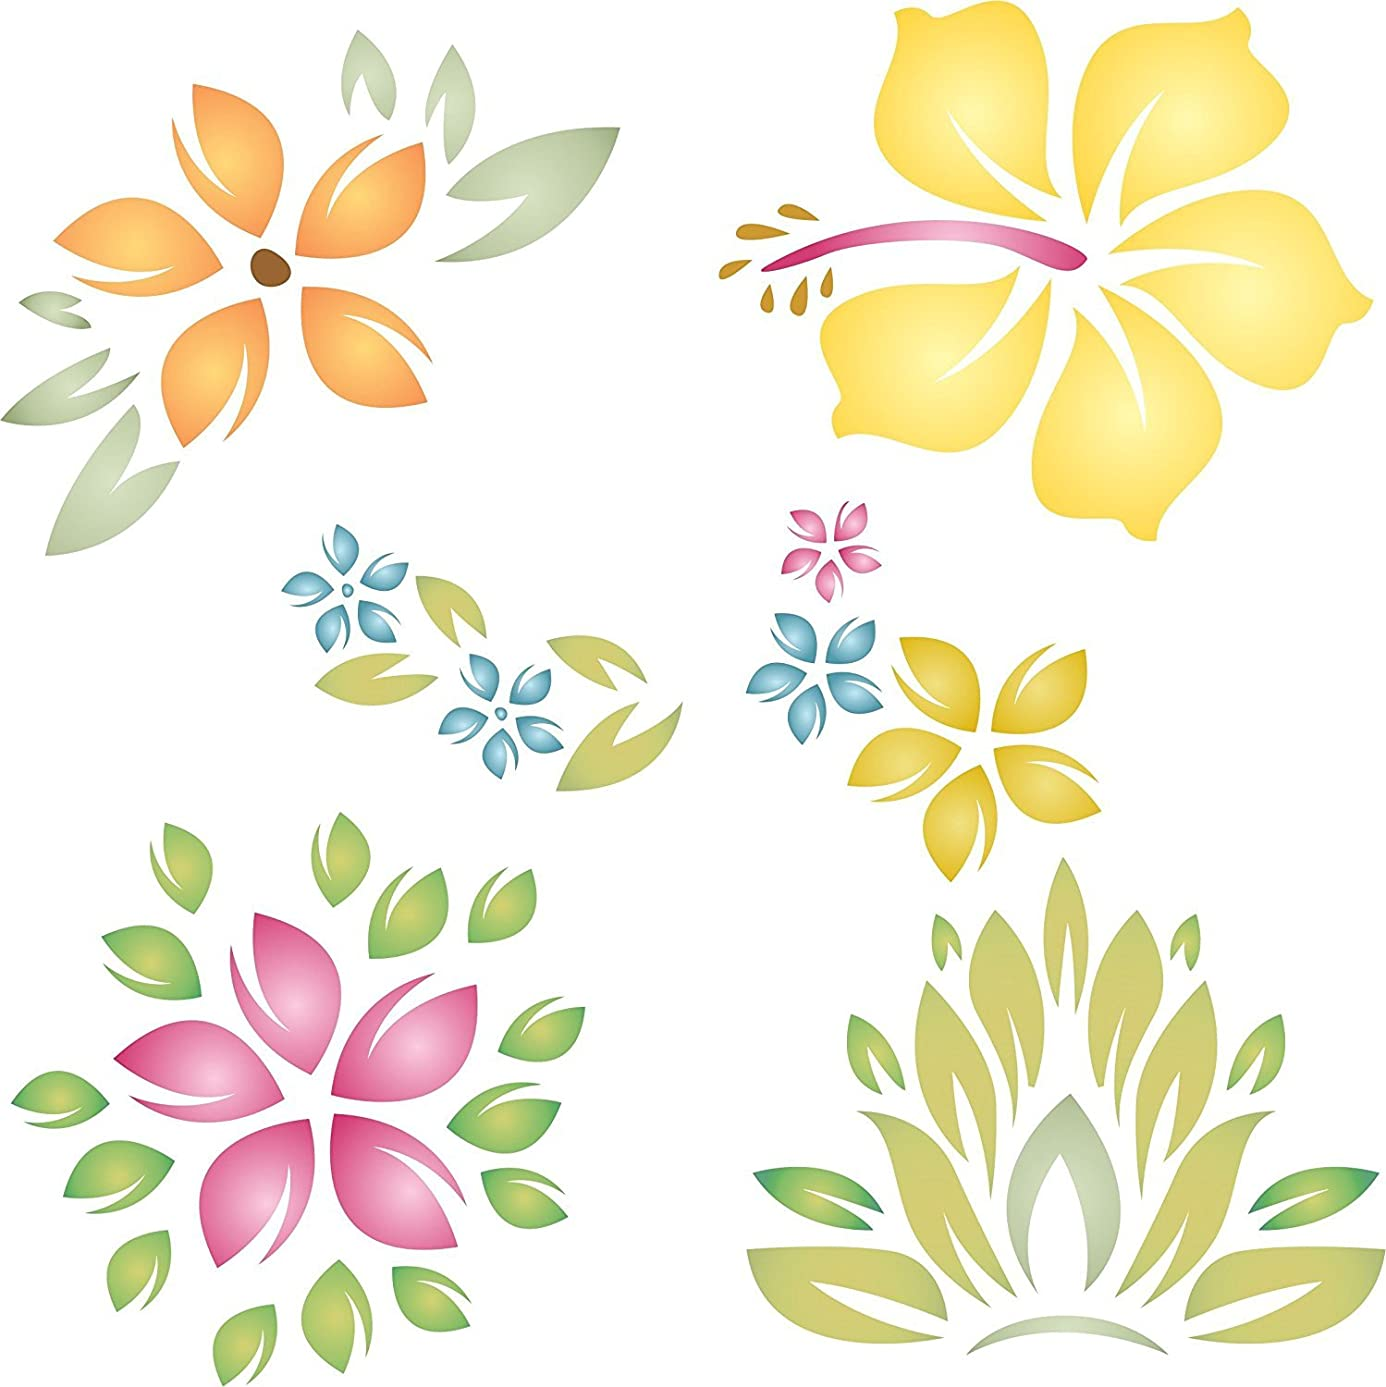 "Tropical Flowers Stencil - (size 10.5""w x 10.5""h) Reusable Wall Stencils for Painting - Best Quality Template Allover Wallpaper ideas - Use on Walls, Floors, Fabrics, Glass, Wood, and More…"